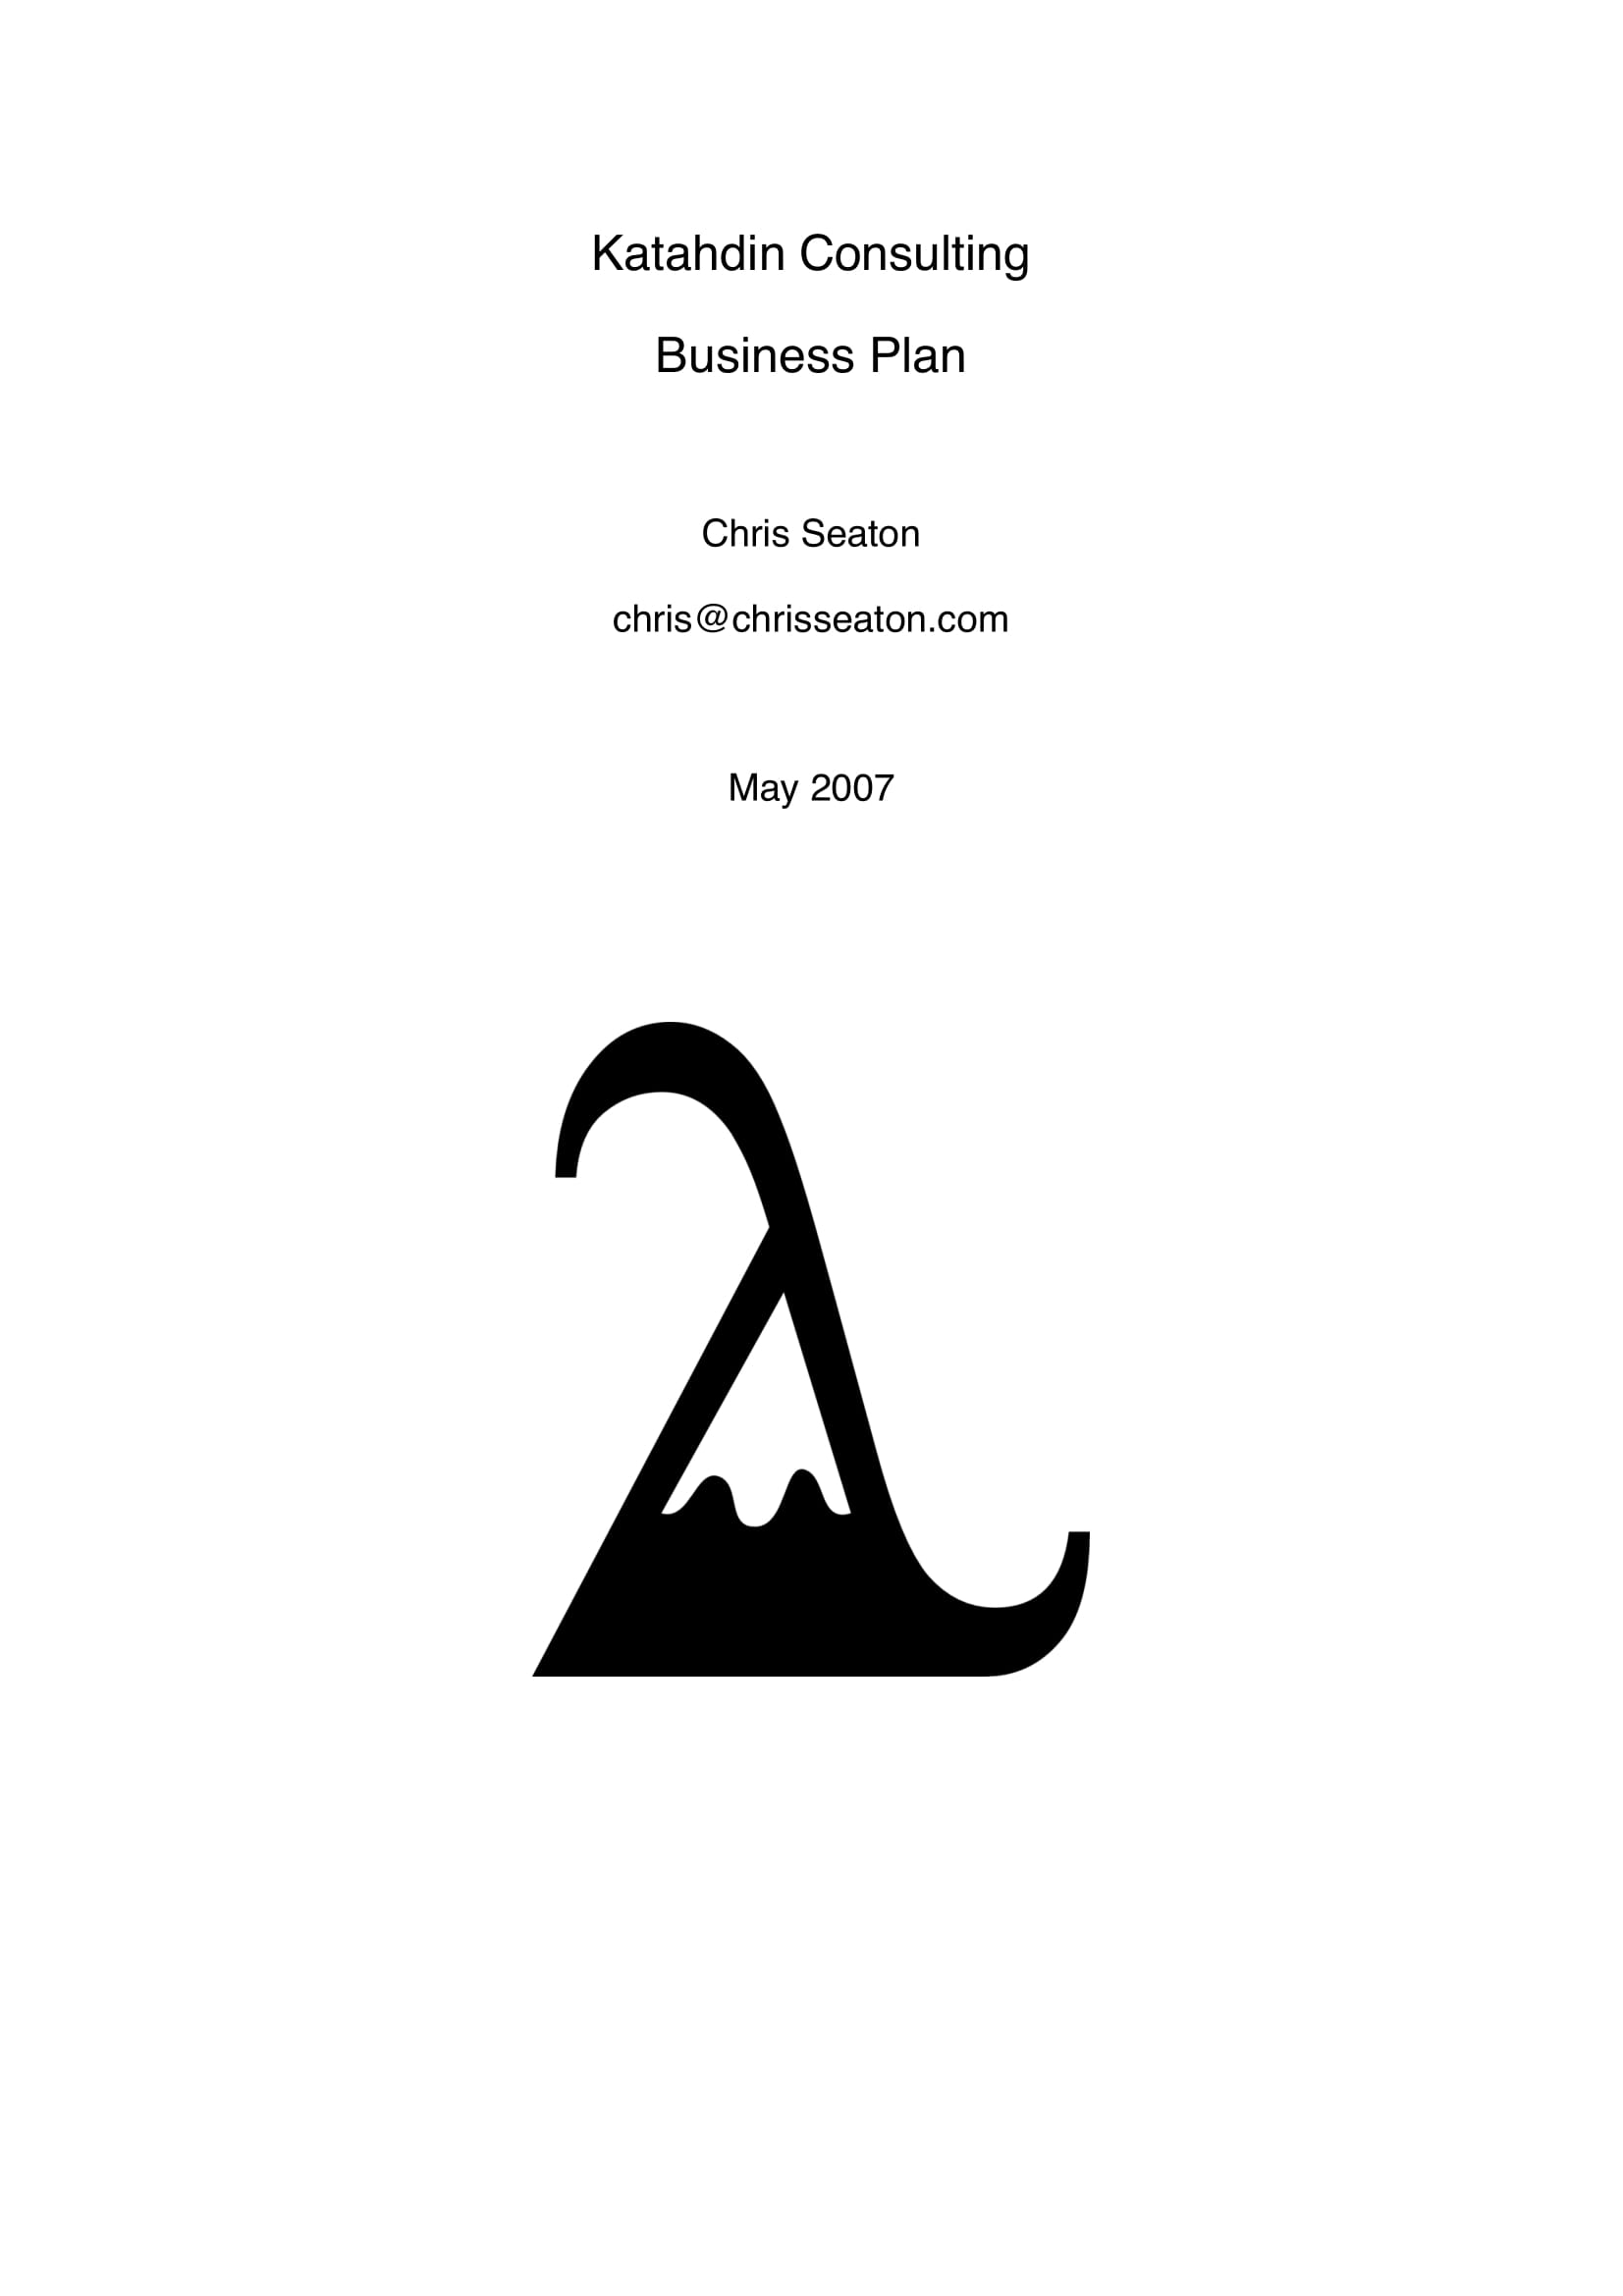 katahdin business plan